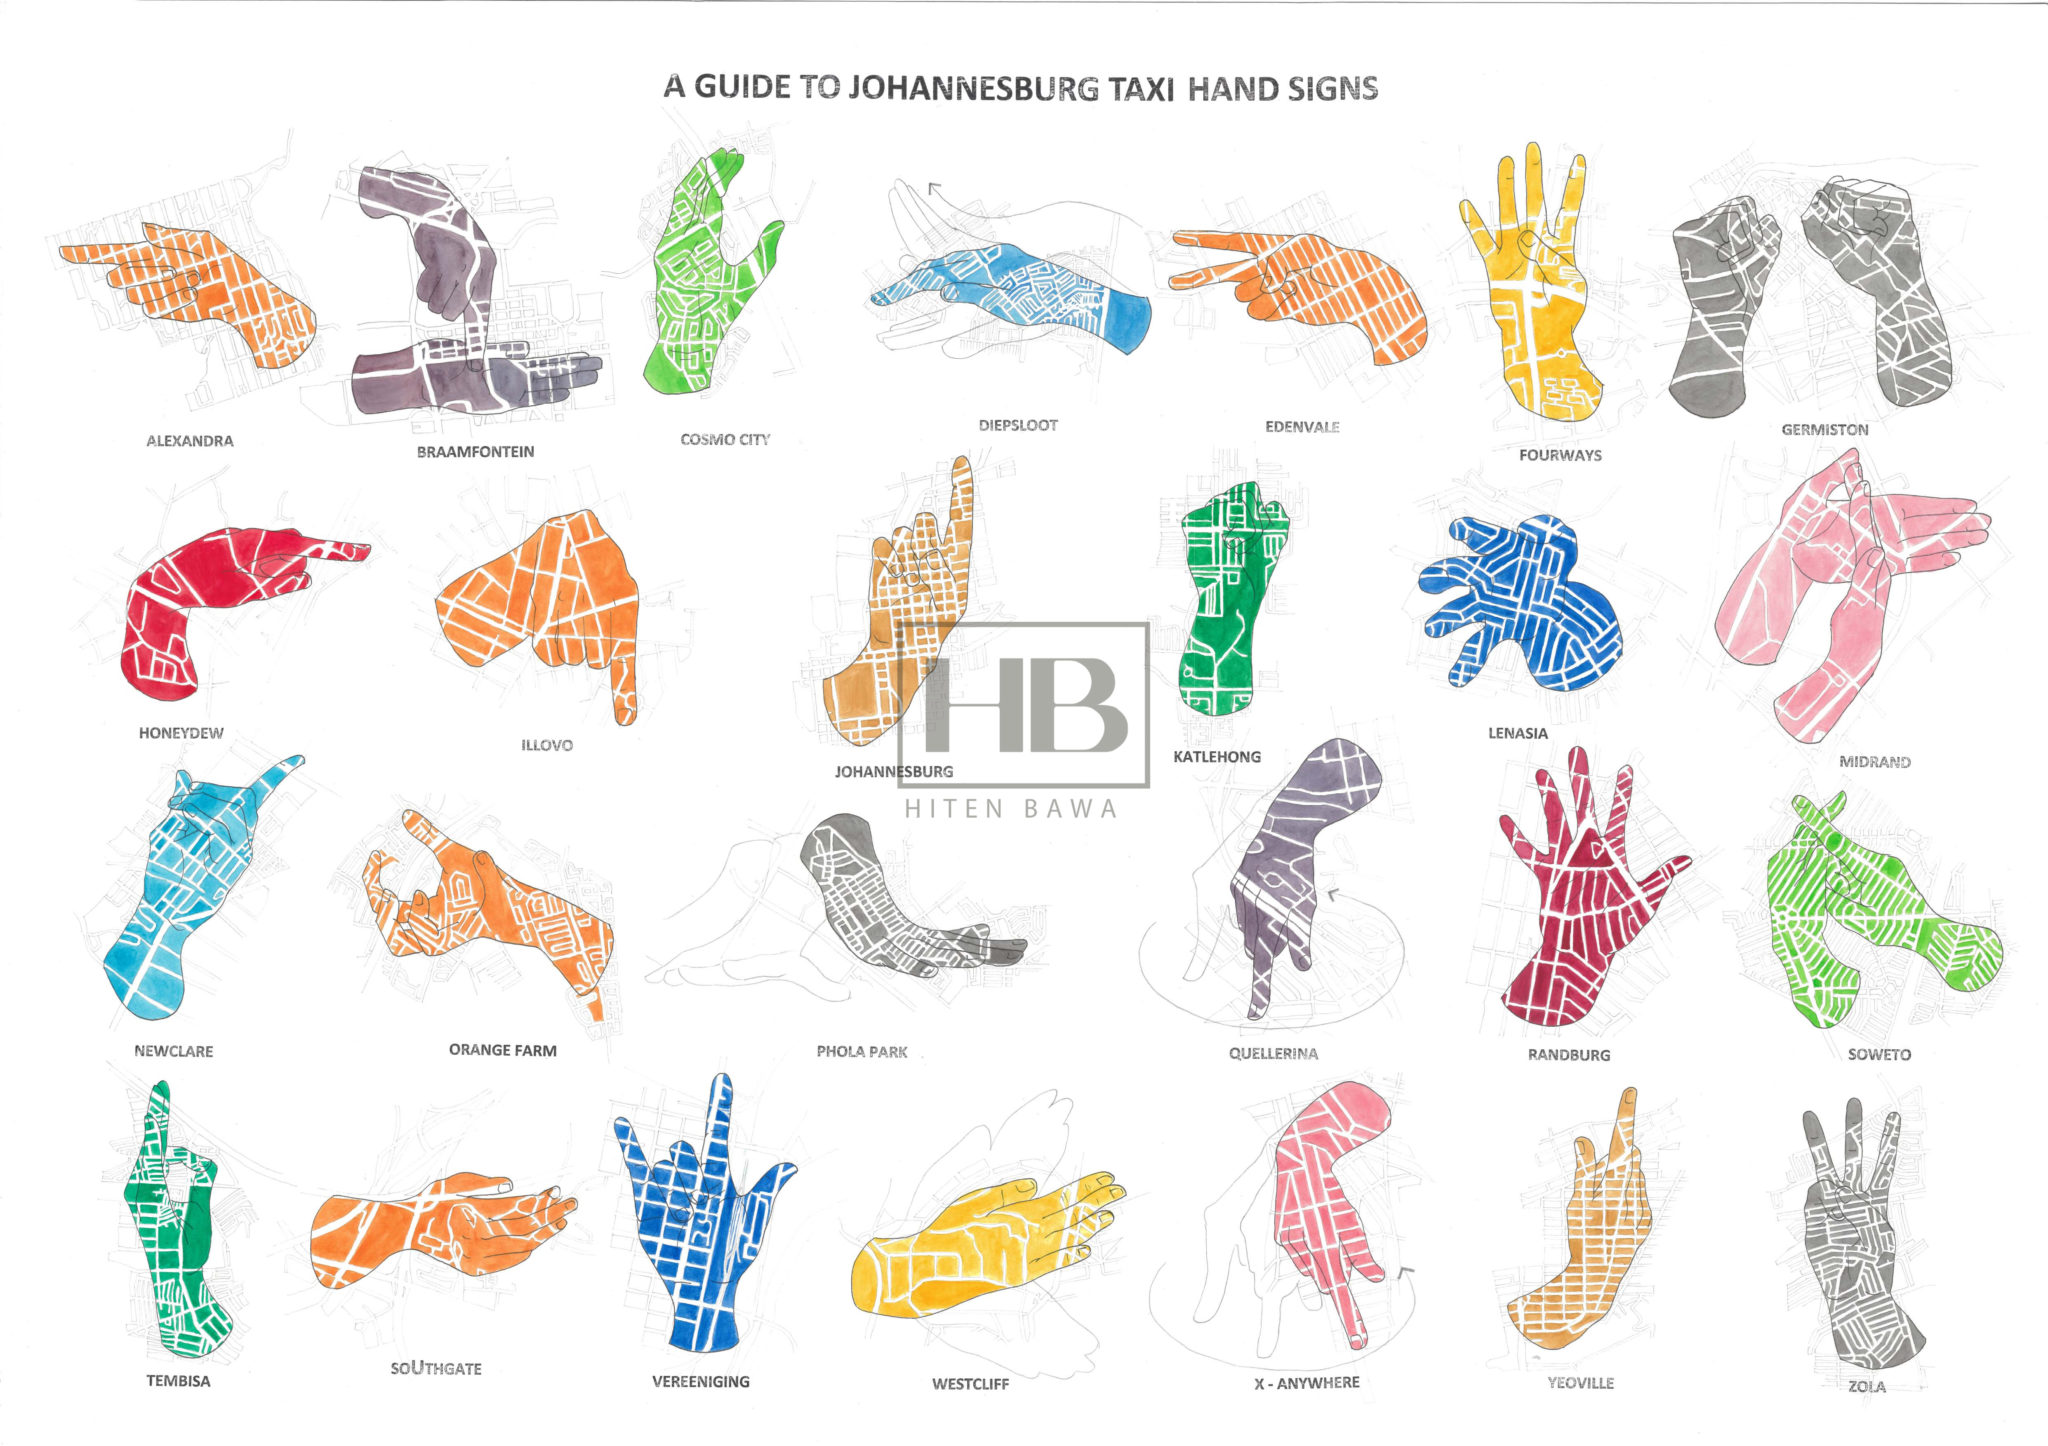 Artwork by Hiten Bawa. Hands of different colours, including blue, yellow, green and red, making signs for various taxi destinations in Johannesburg